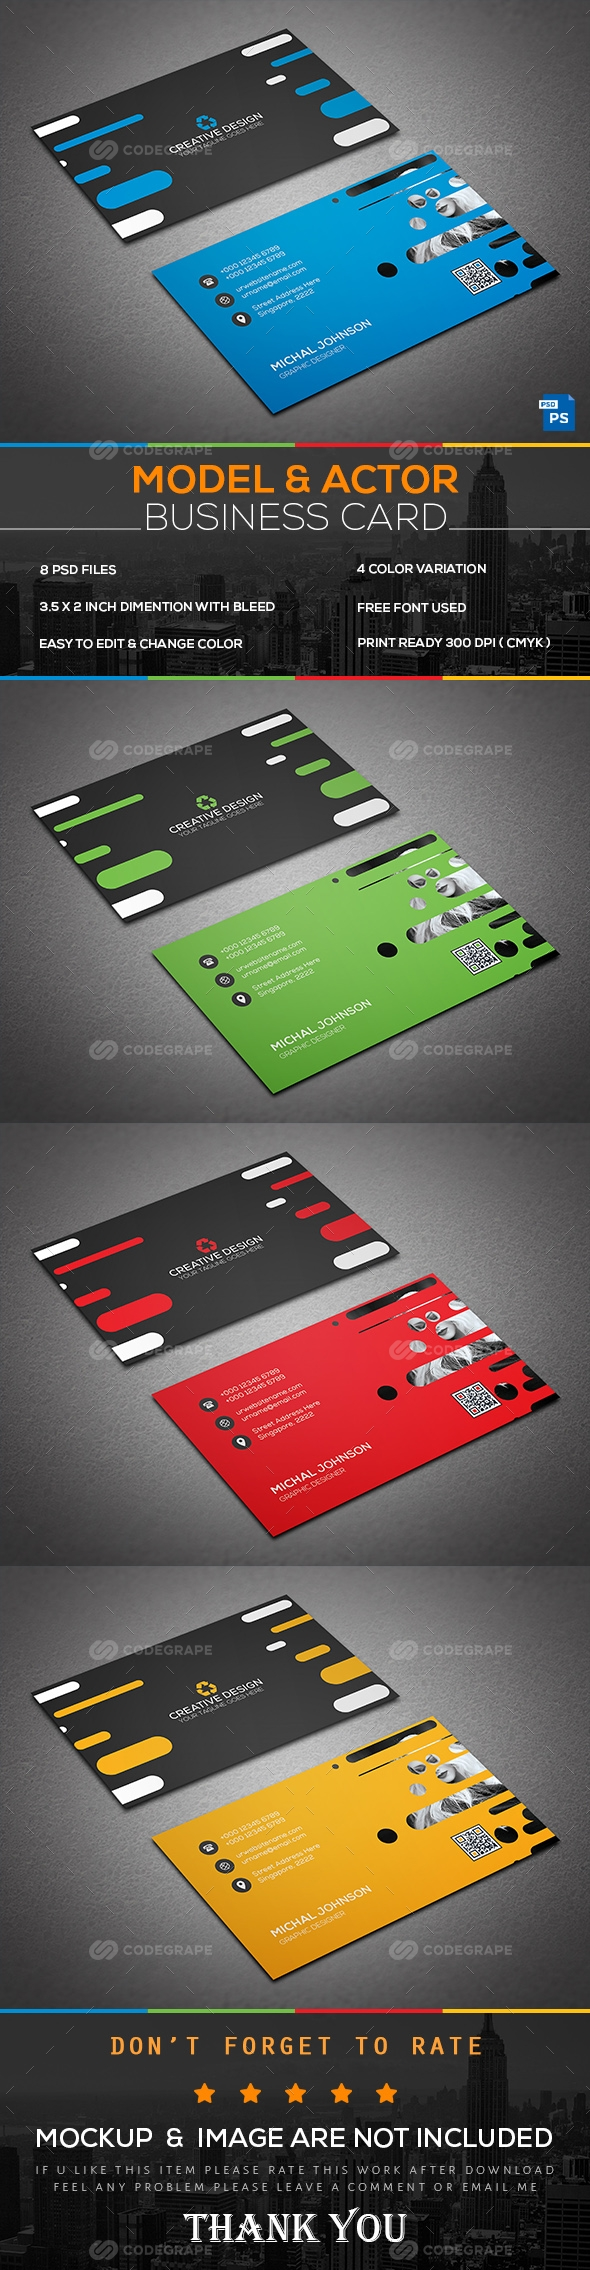 Model & Actor Business Card   Business cards, Business and Card ...